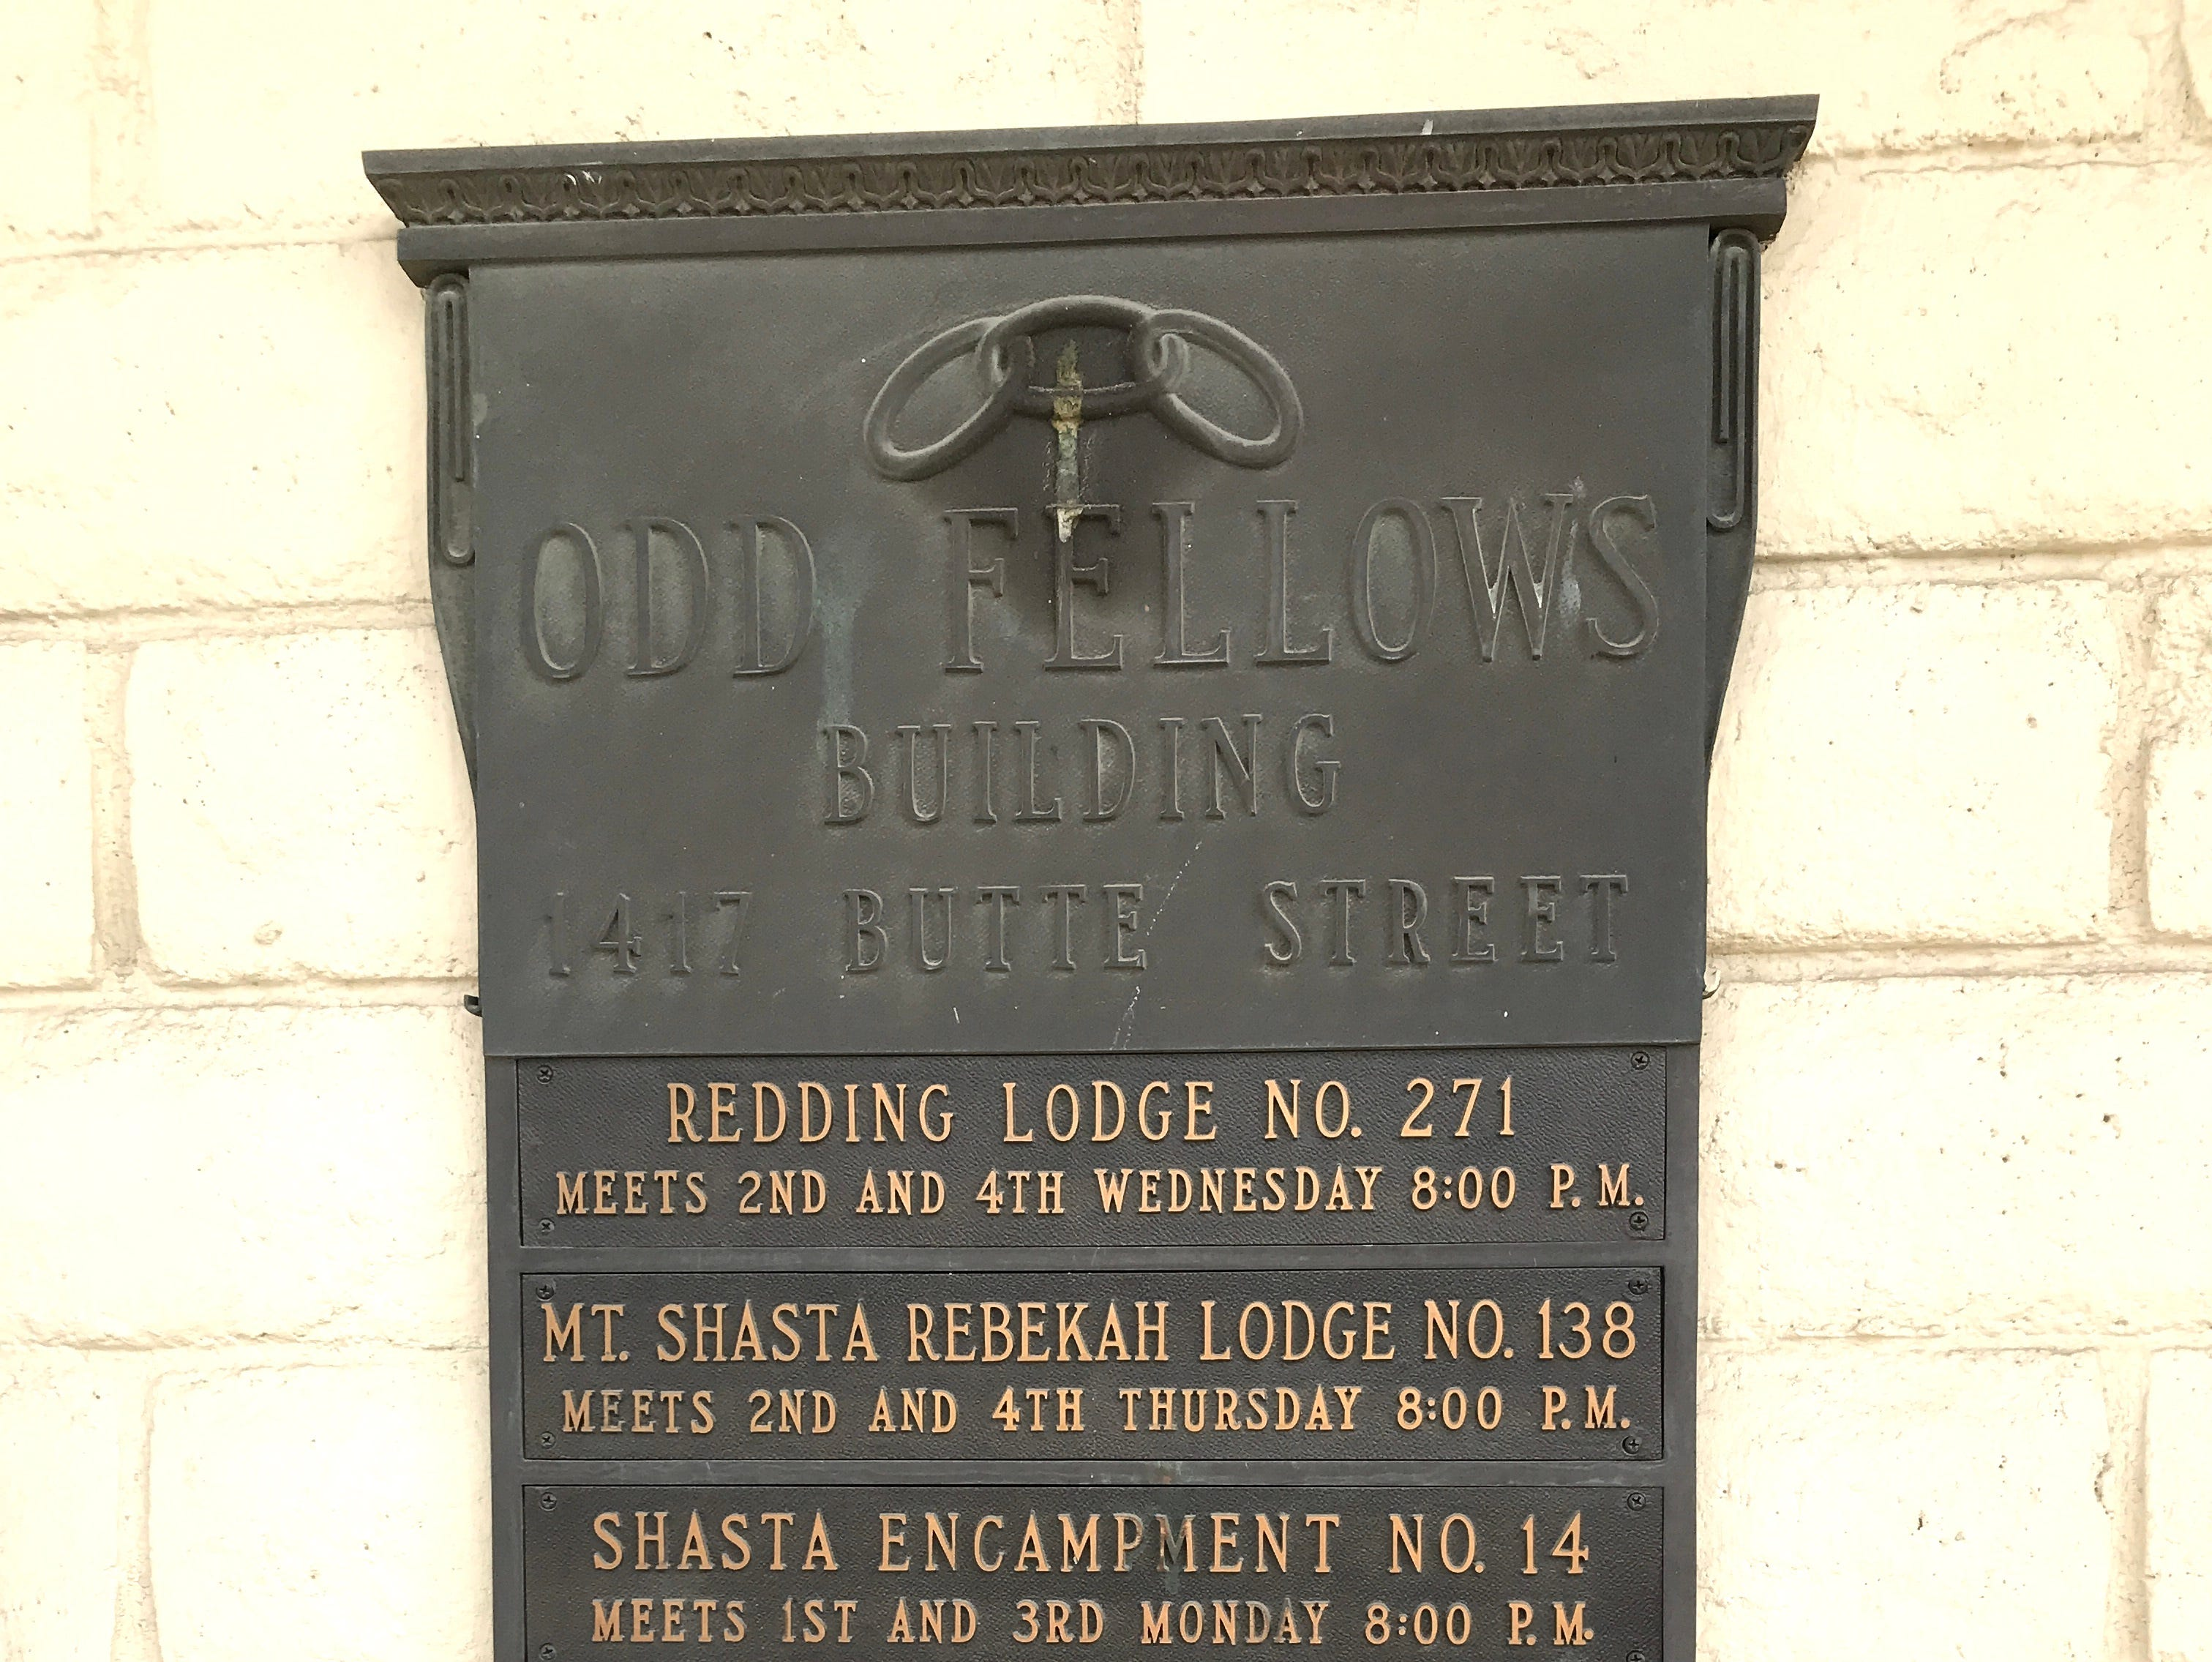 This plaque is affixed to the outside of the IOOF Hall in downtown Redding.